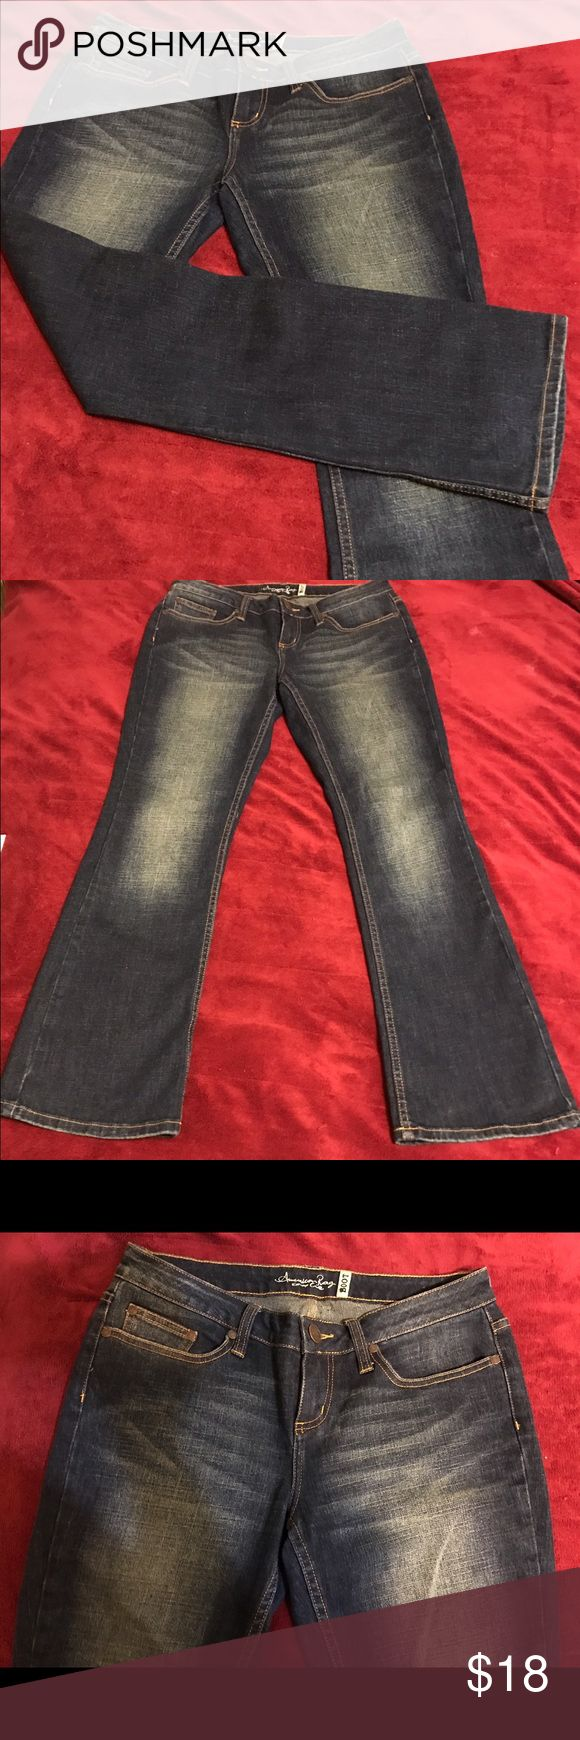 American Rag, Women's Jeans 👖 Size..9 Short Nice women's boot cut jeans 👖 in excellent condition. 80% cotton, 18% polyester and 2% spandex. American Rag Jeans Boot Cut